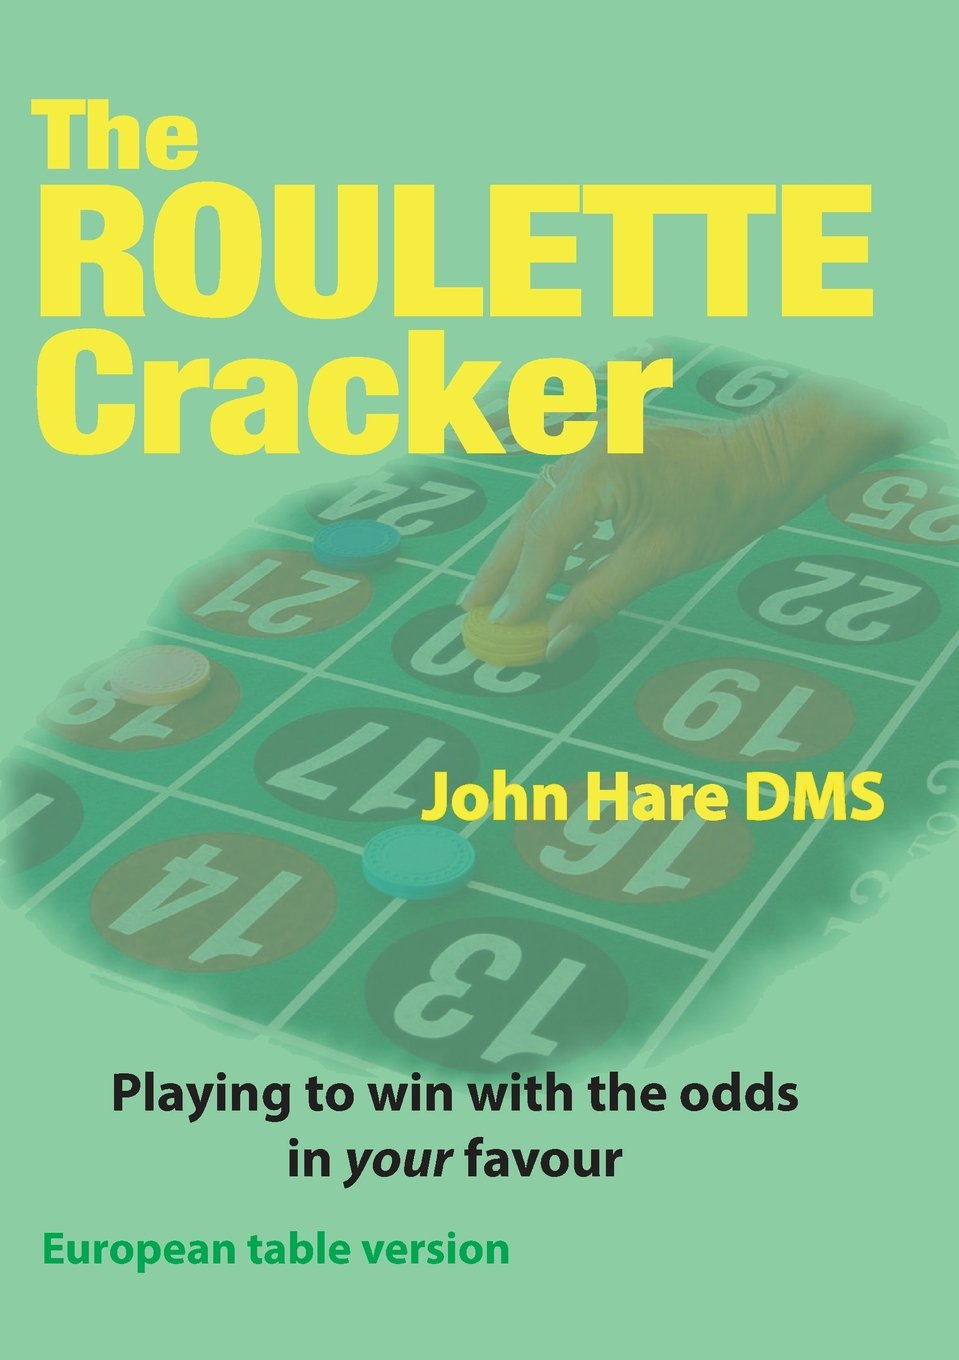 in play betting cracker